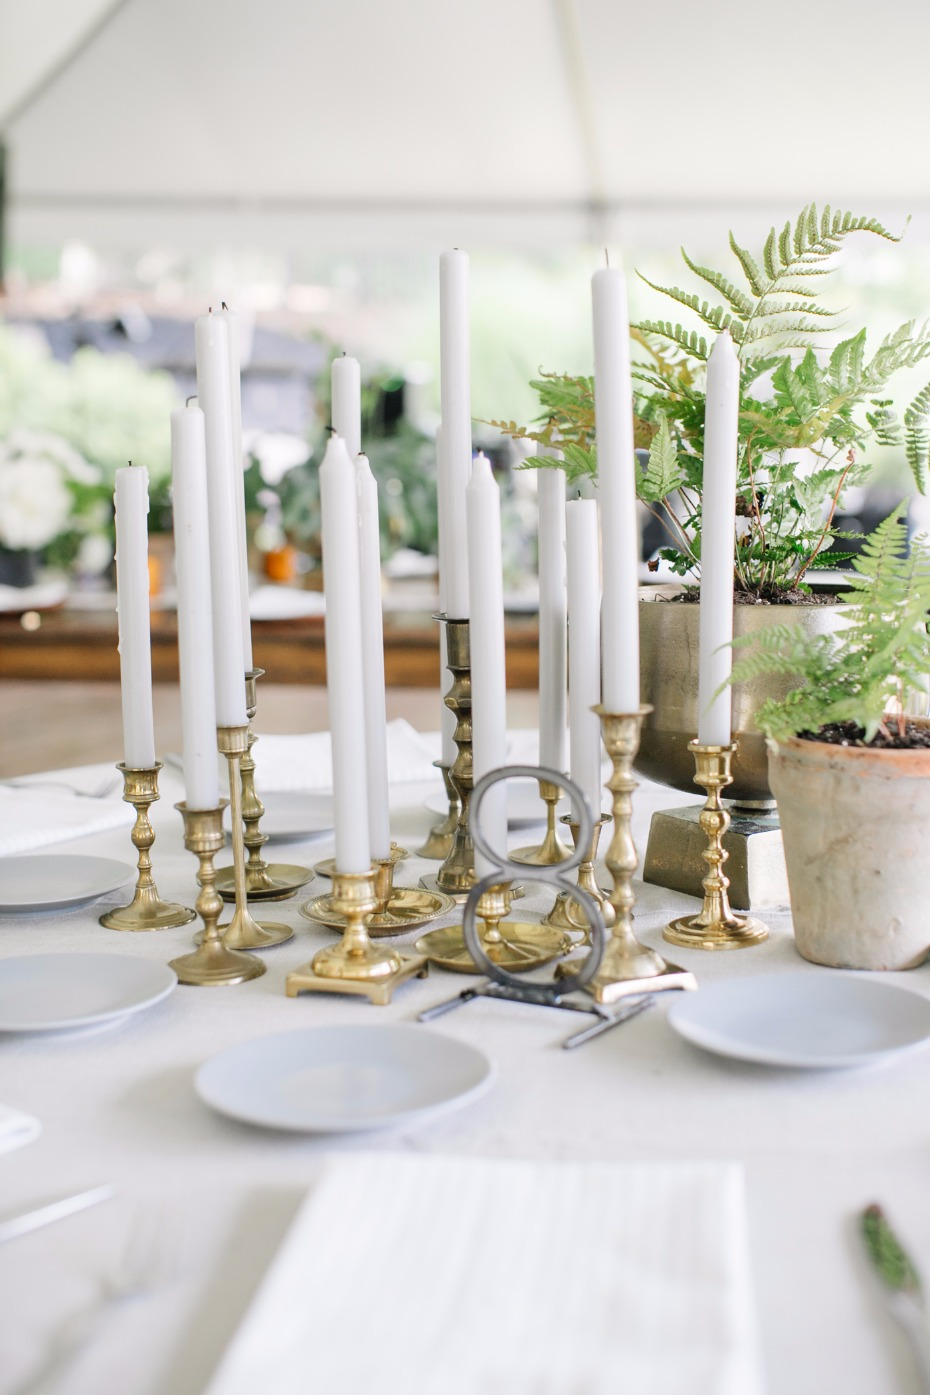 Candle sticks and potted plants centerpiece